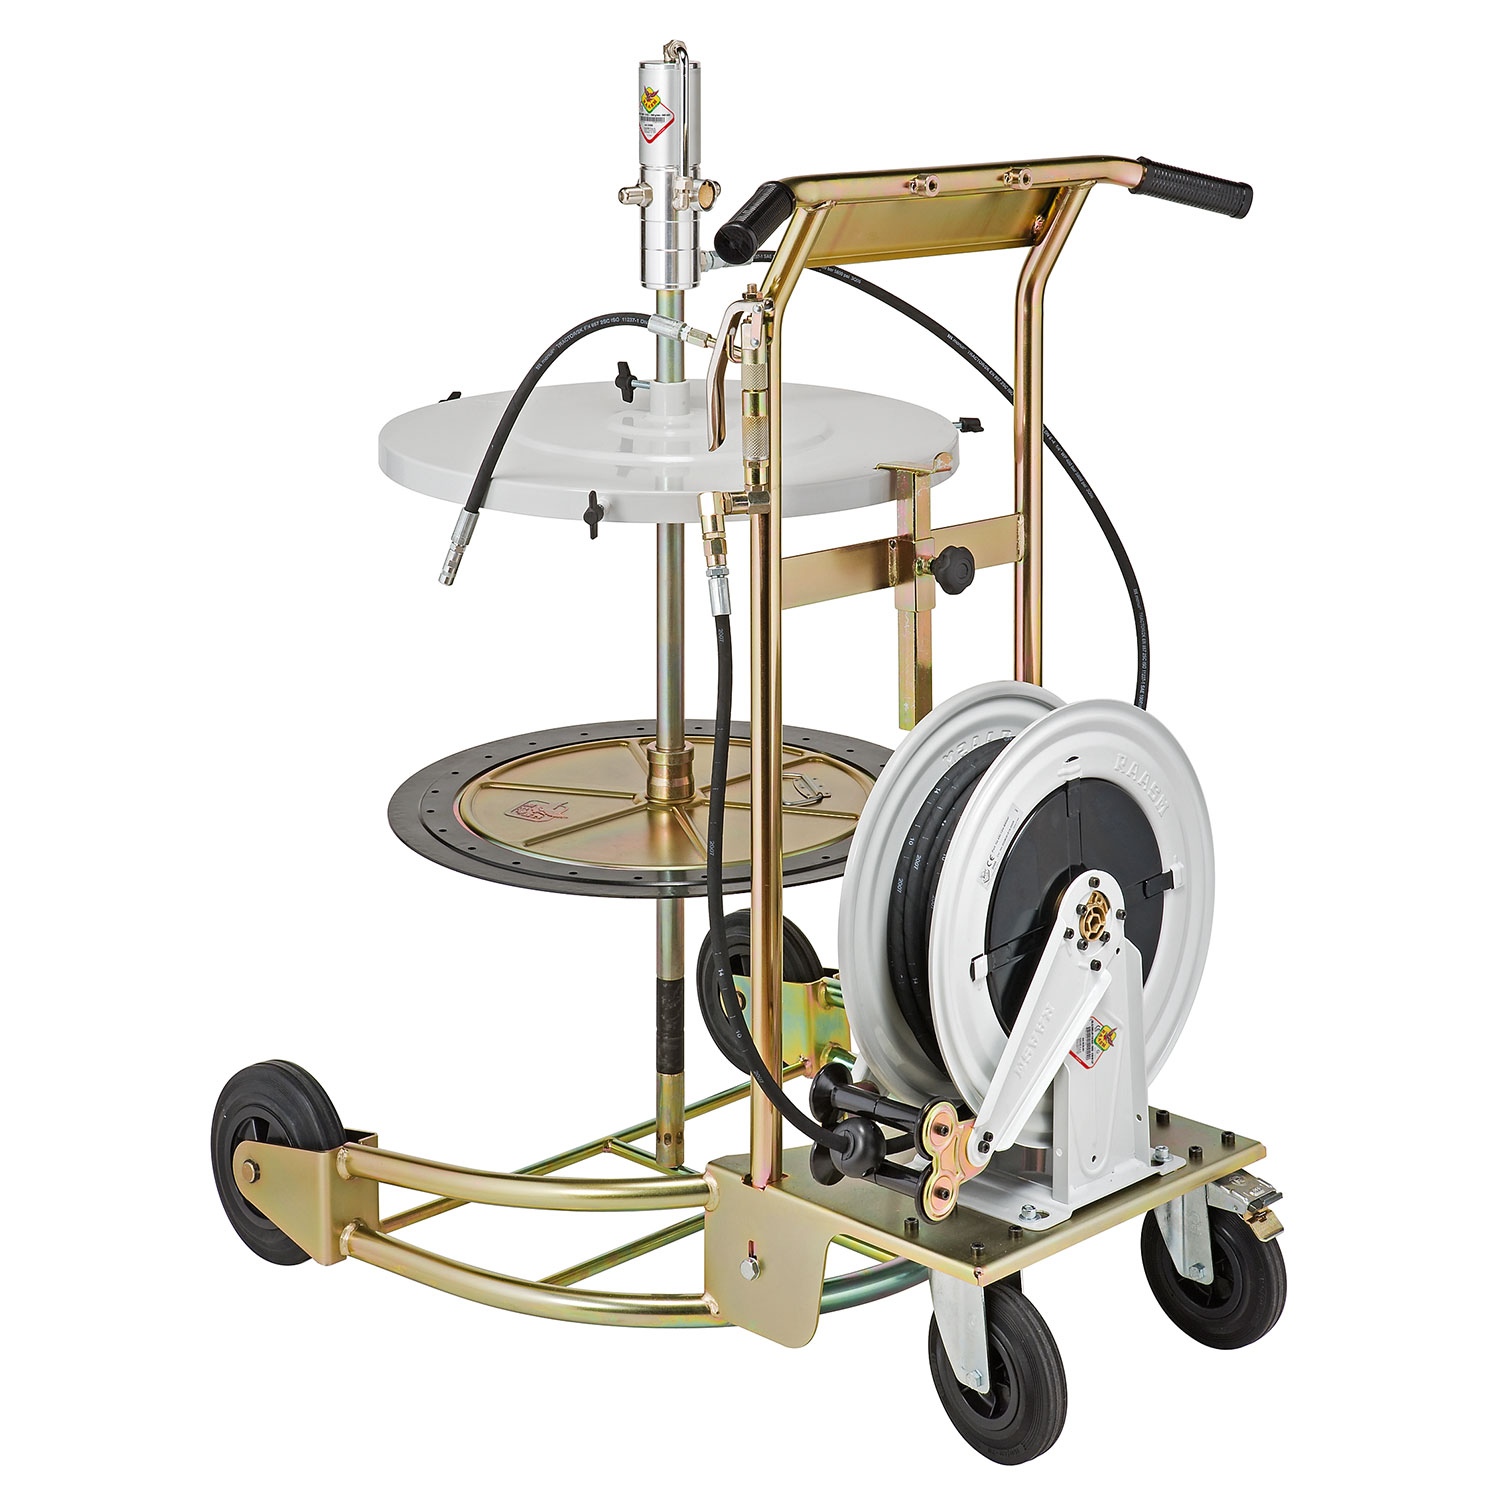 64001 - Portable, Air Operated Medium Duty Grease Pump Trolley Kit for 180kg Drums